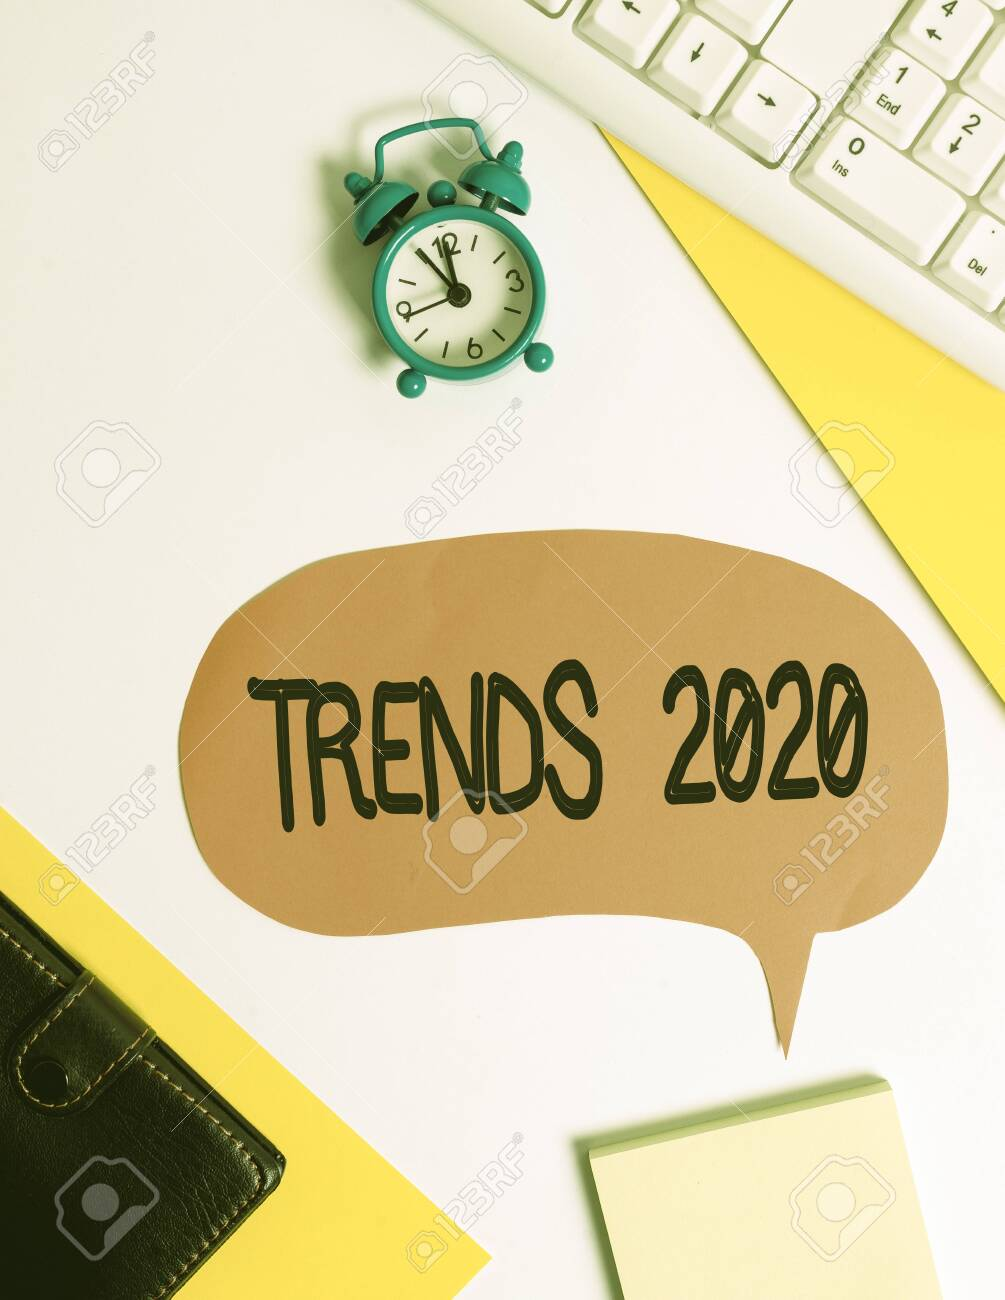 Upcoming Trends 2020.Word Writing Text Trends 2020 Business Photo Showcasing Upcoming